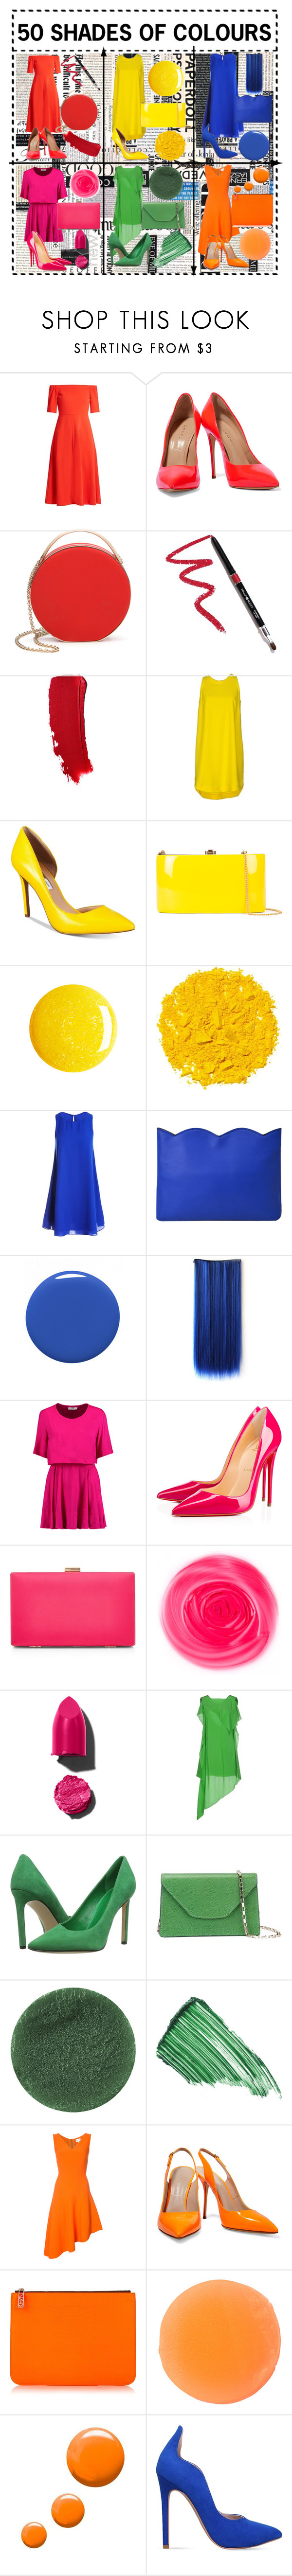 """""""50 SHADES OF COLOURS:Lodovica Comello"""" by theajames101 ❤ liked on Polyvore featuring TIBI, Casadei, Eddie Borgo, Dollup Beauty, Aniye By, INC International Concepts, Rocio, Illamasqua, Sans Souci and Dolce&Gabbana"""